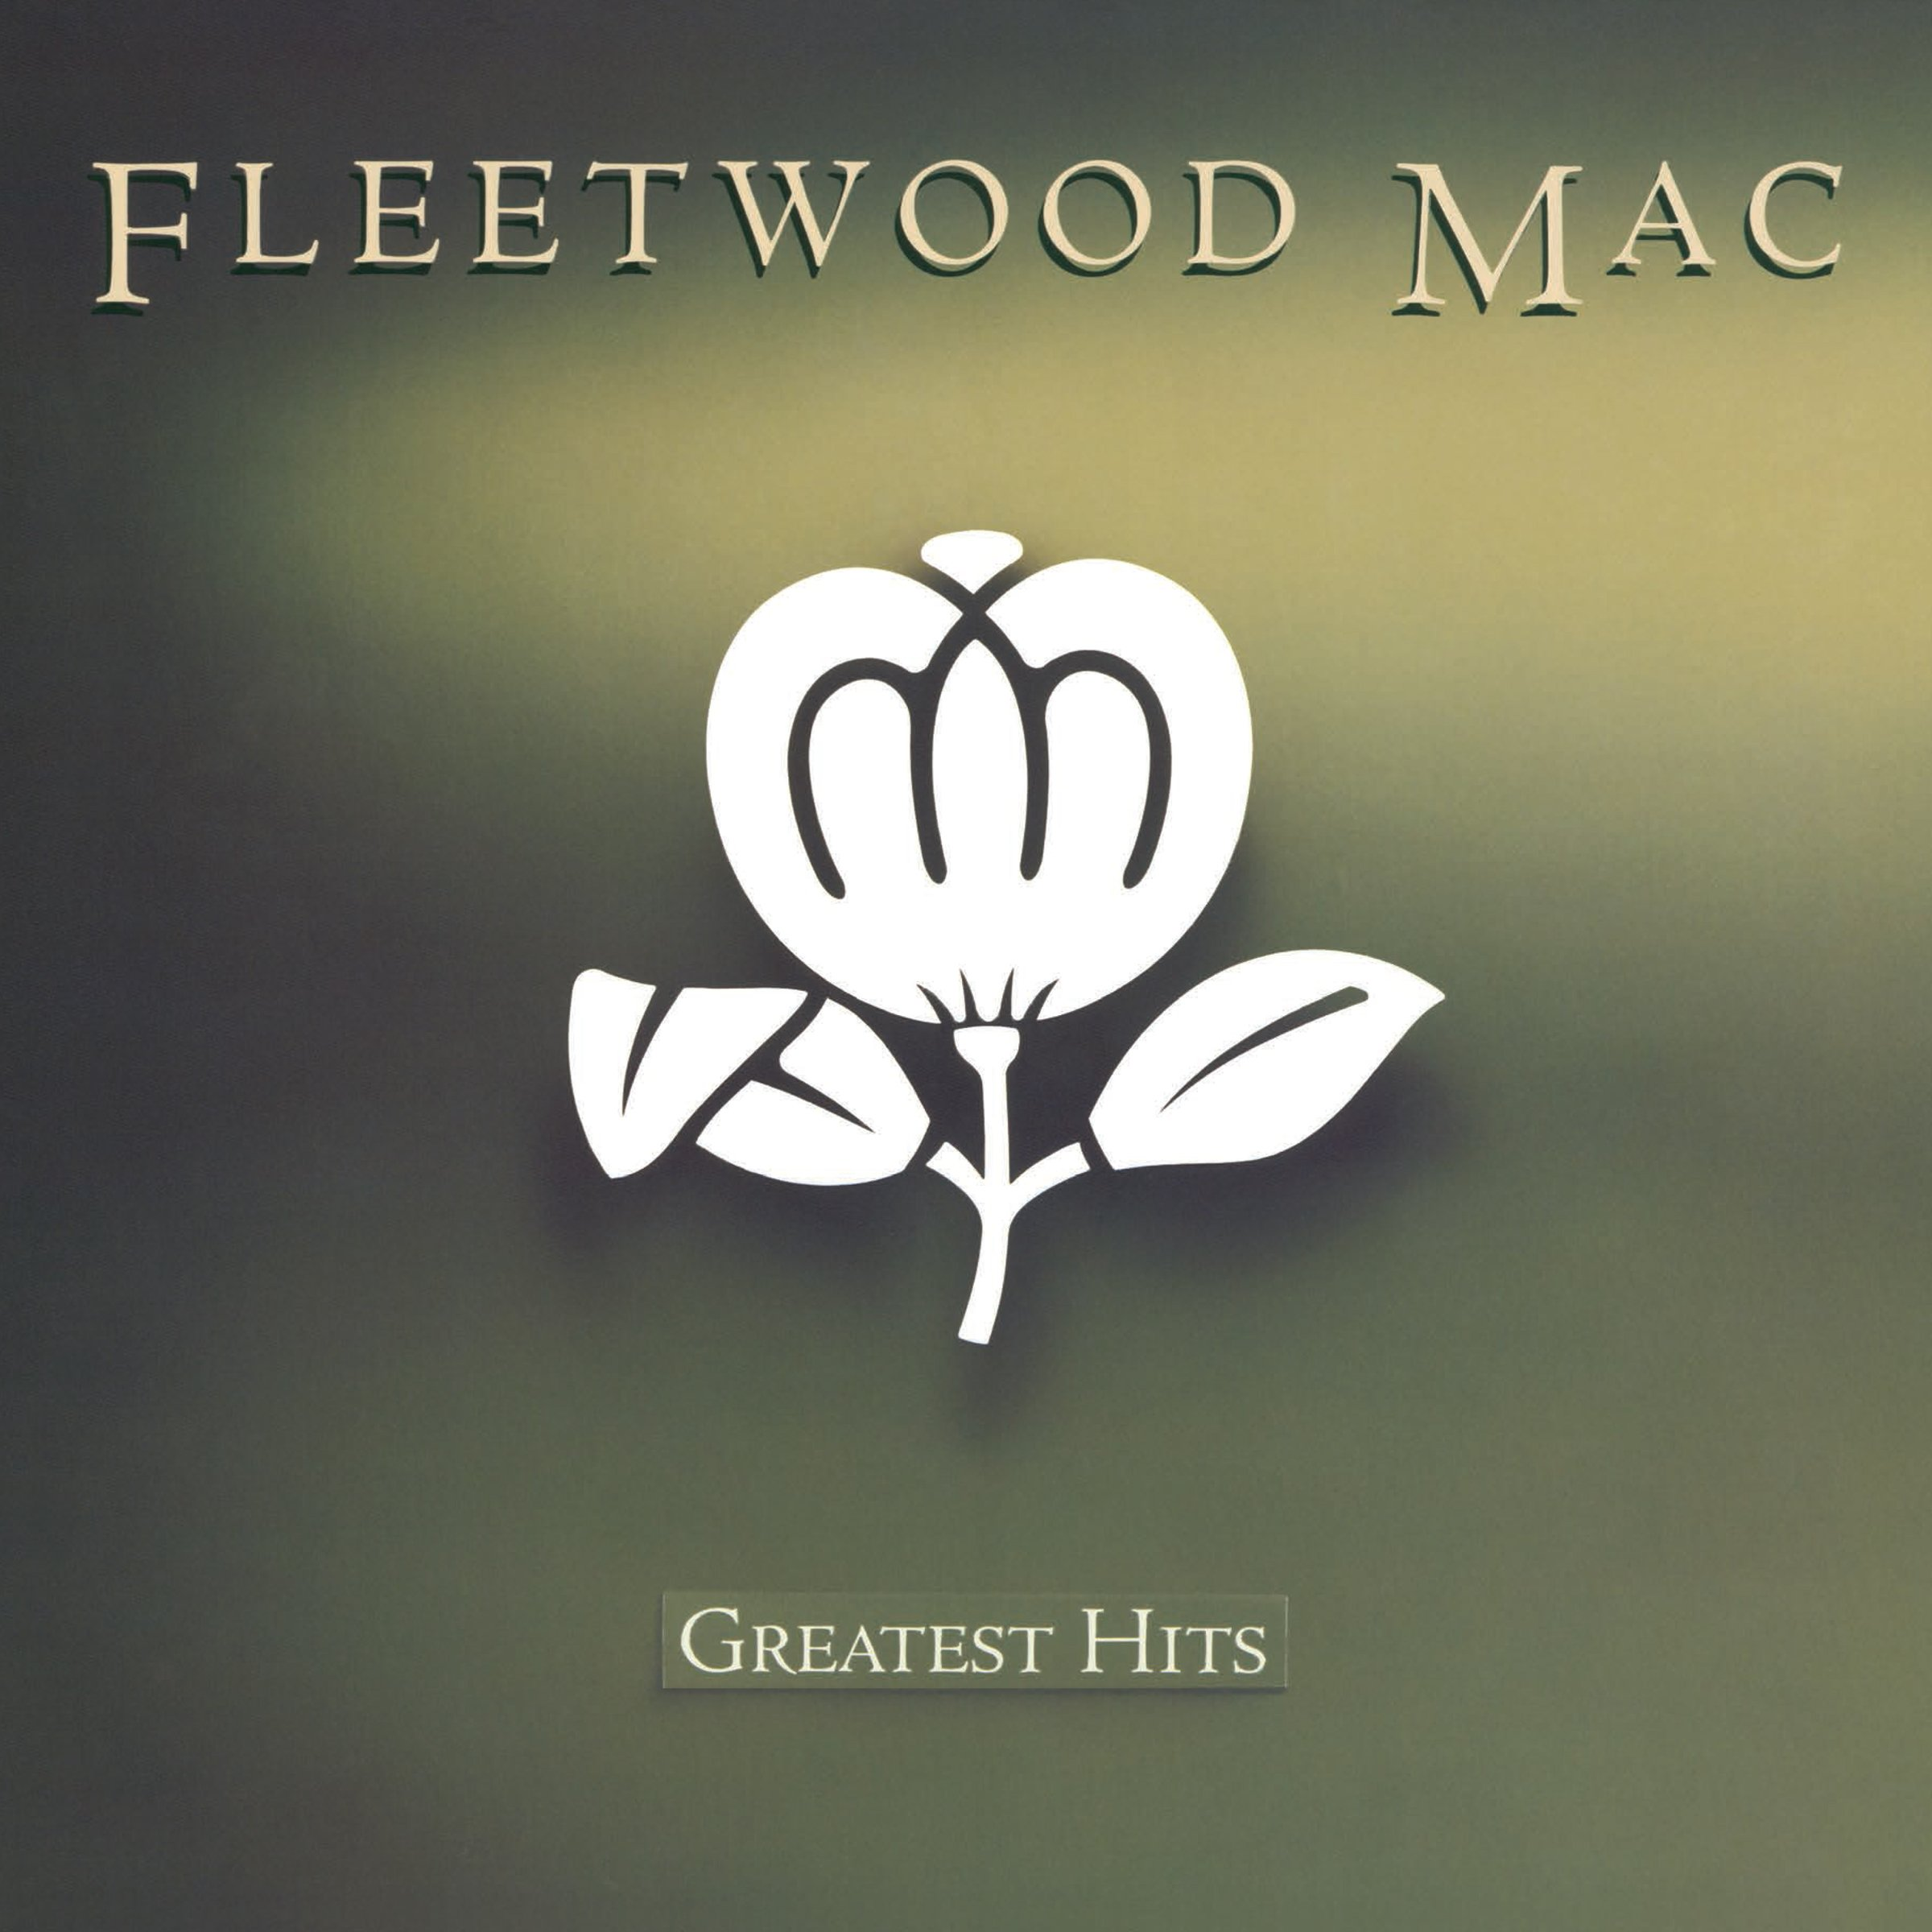 Fleetwood Mac: Greatest Hits by VINYL